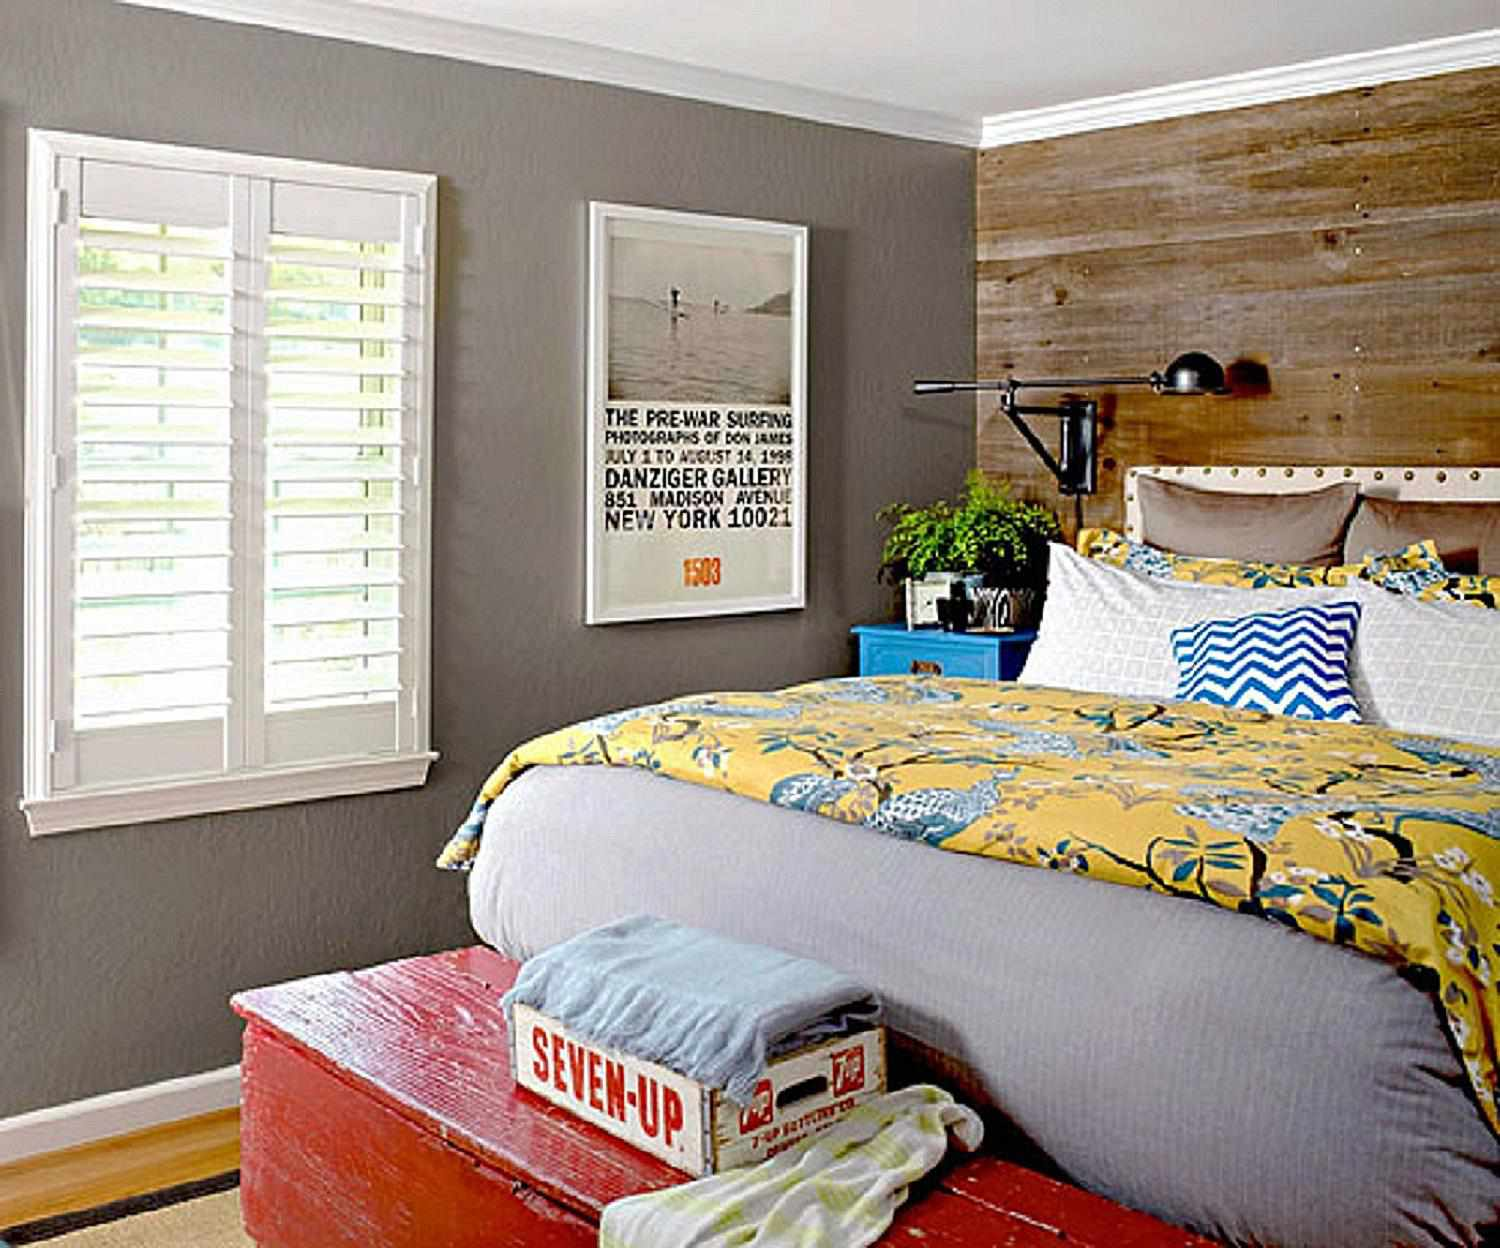 15 Hot Bedroom Decorating Styles And Tips